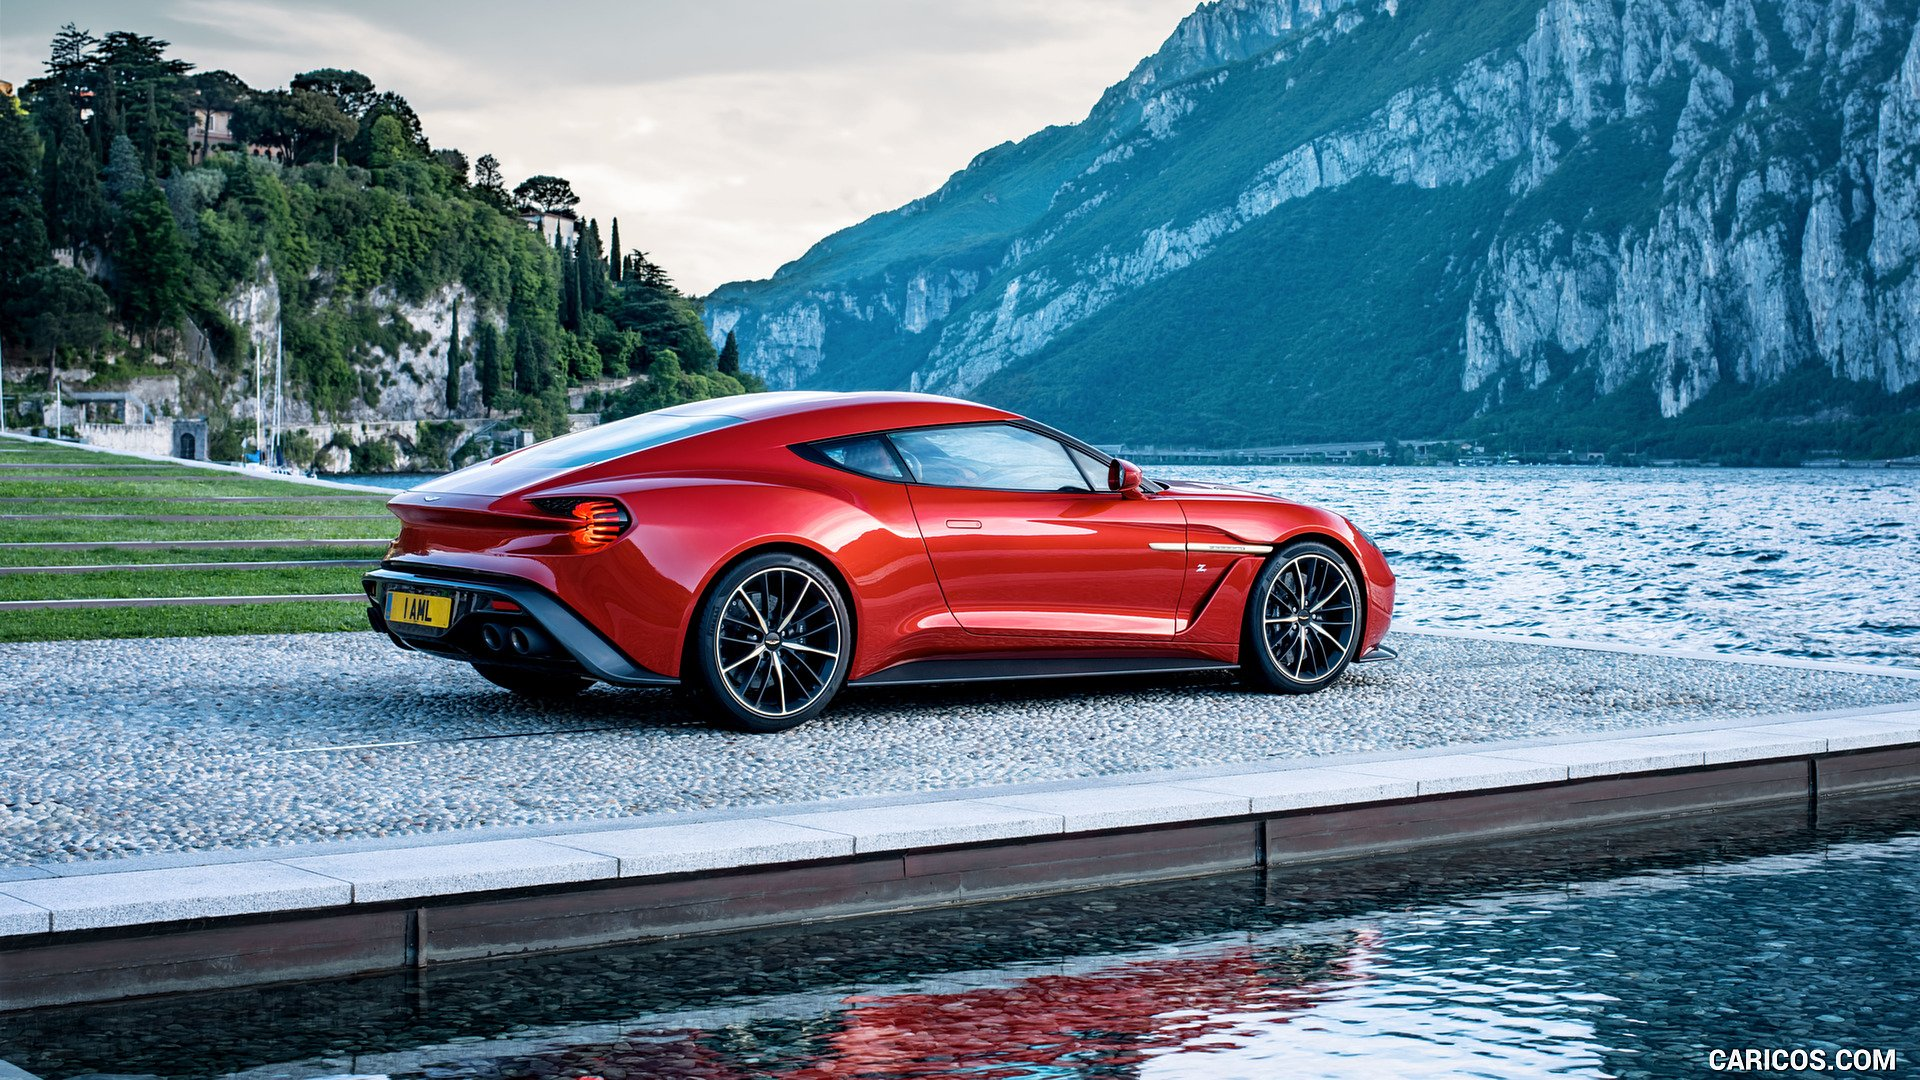 2016 Aston Martin Vanquish Zagato Concept   Side HD Wallpaper 19 1920x1080